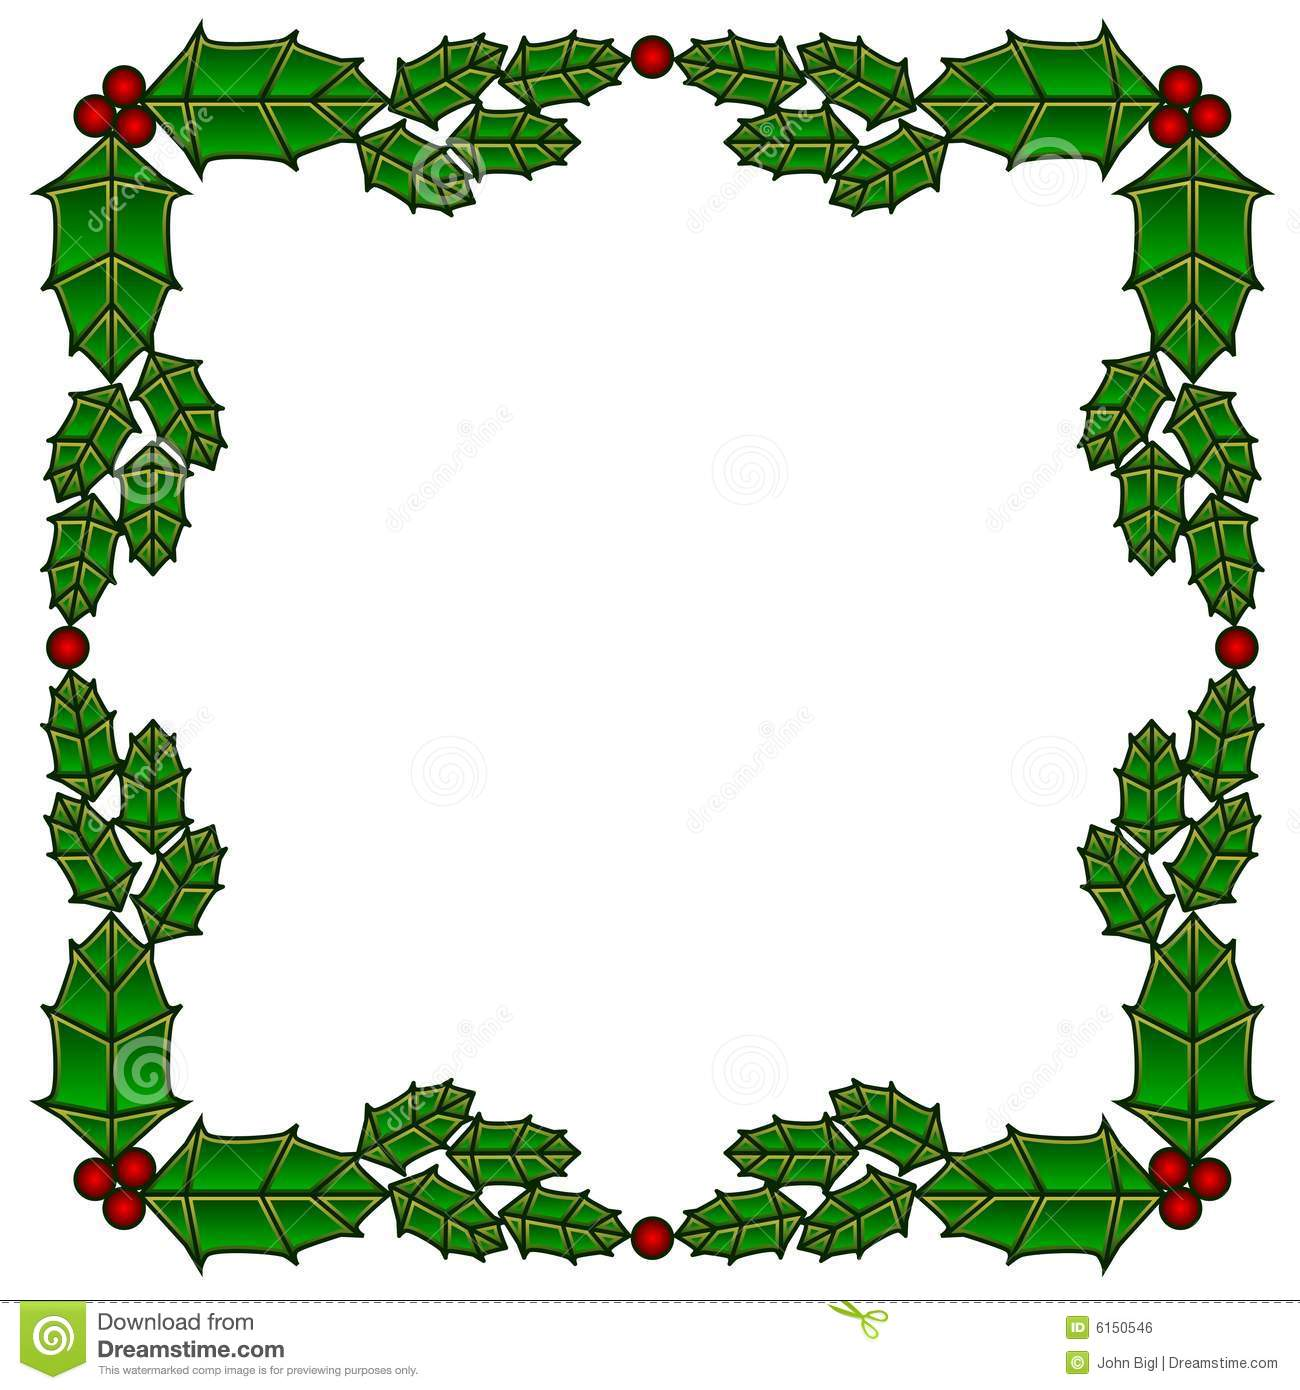 Holly stained glass border royalty free stock image image 6150546 for Holly and ivy border